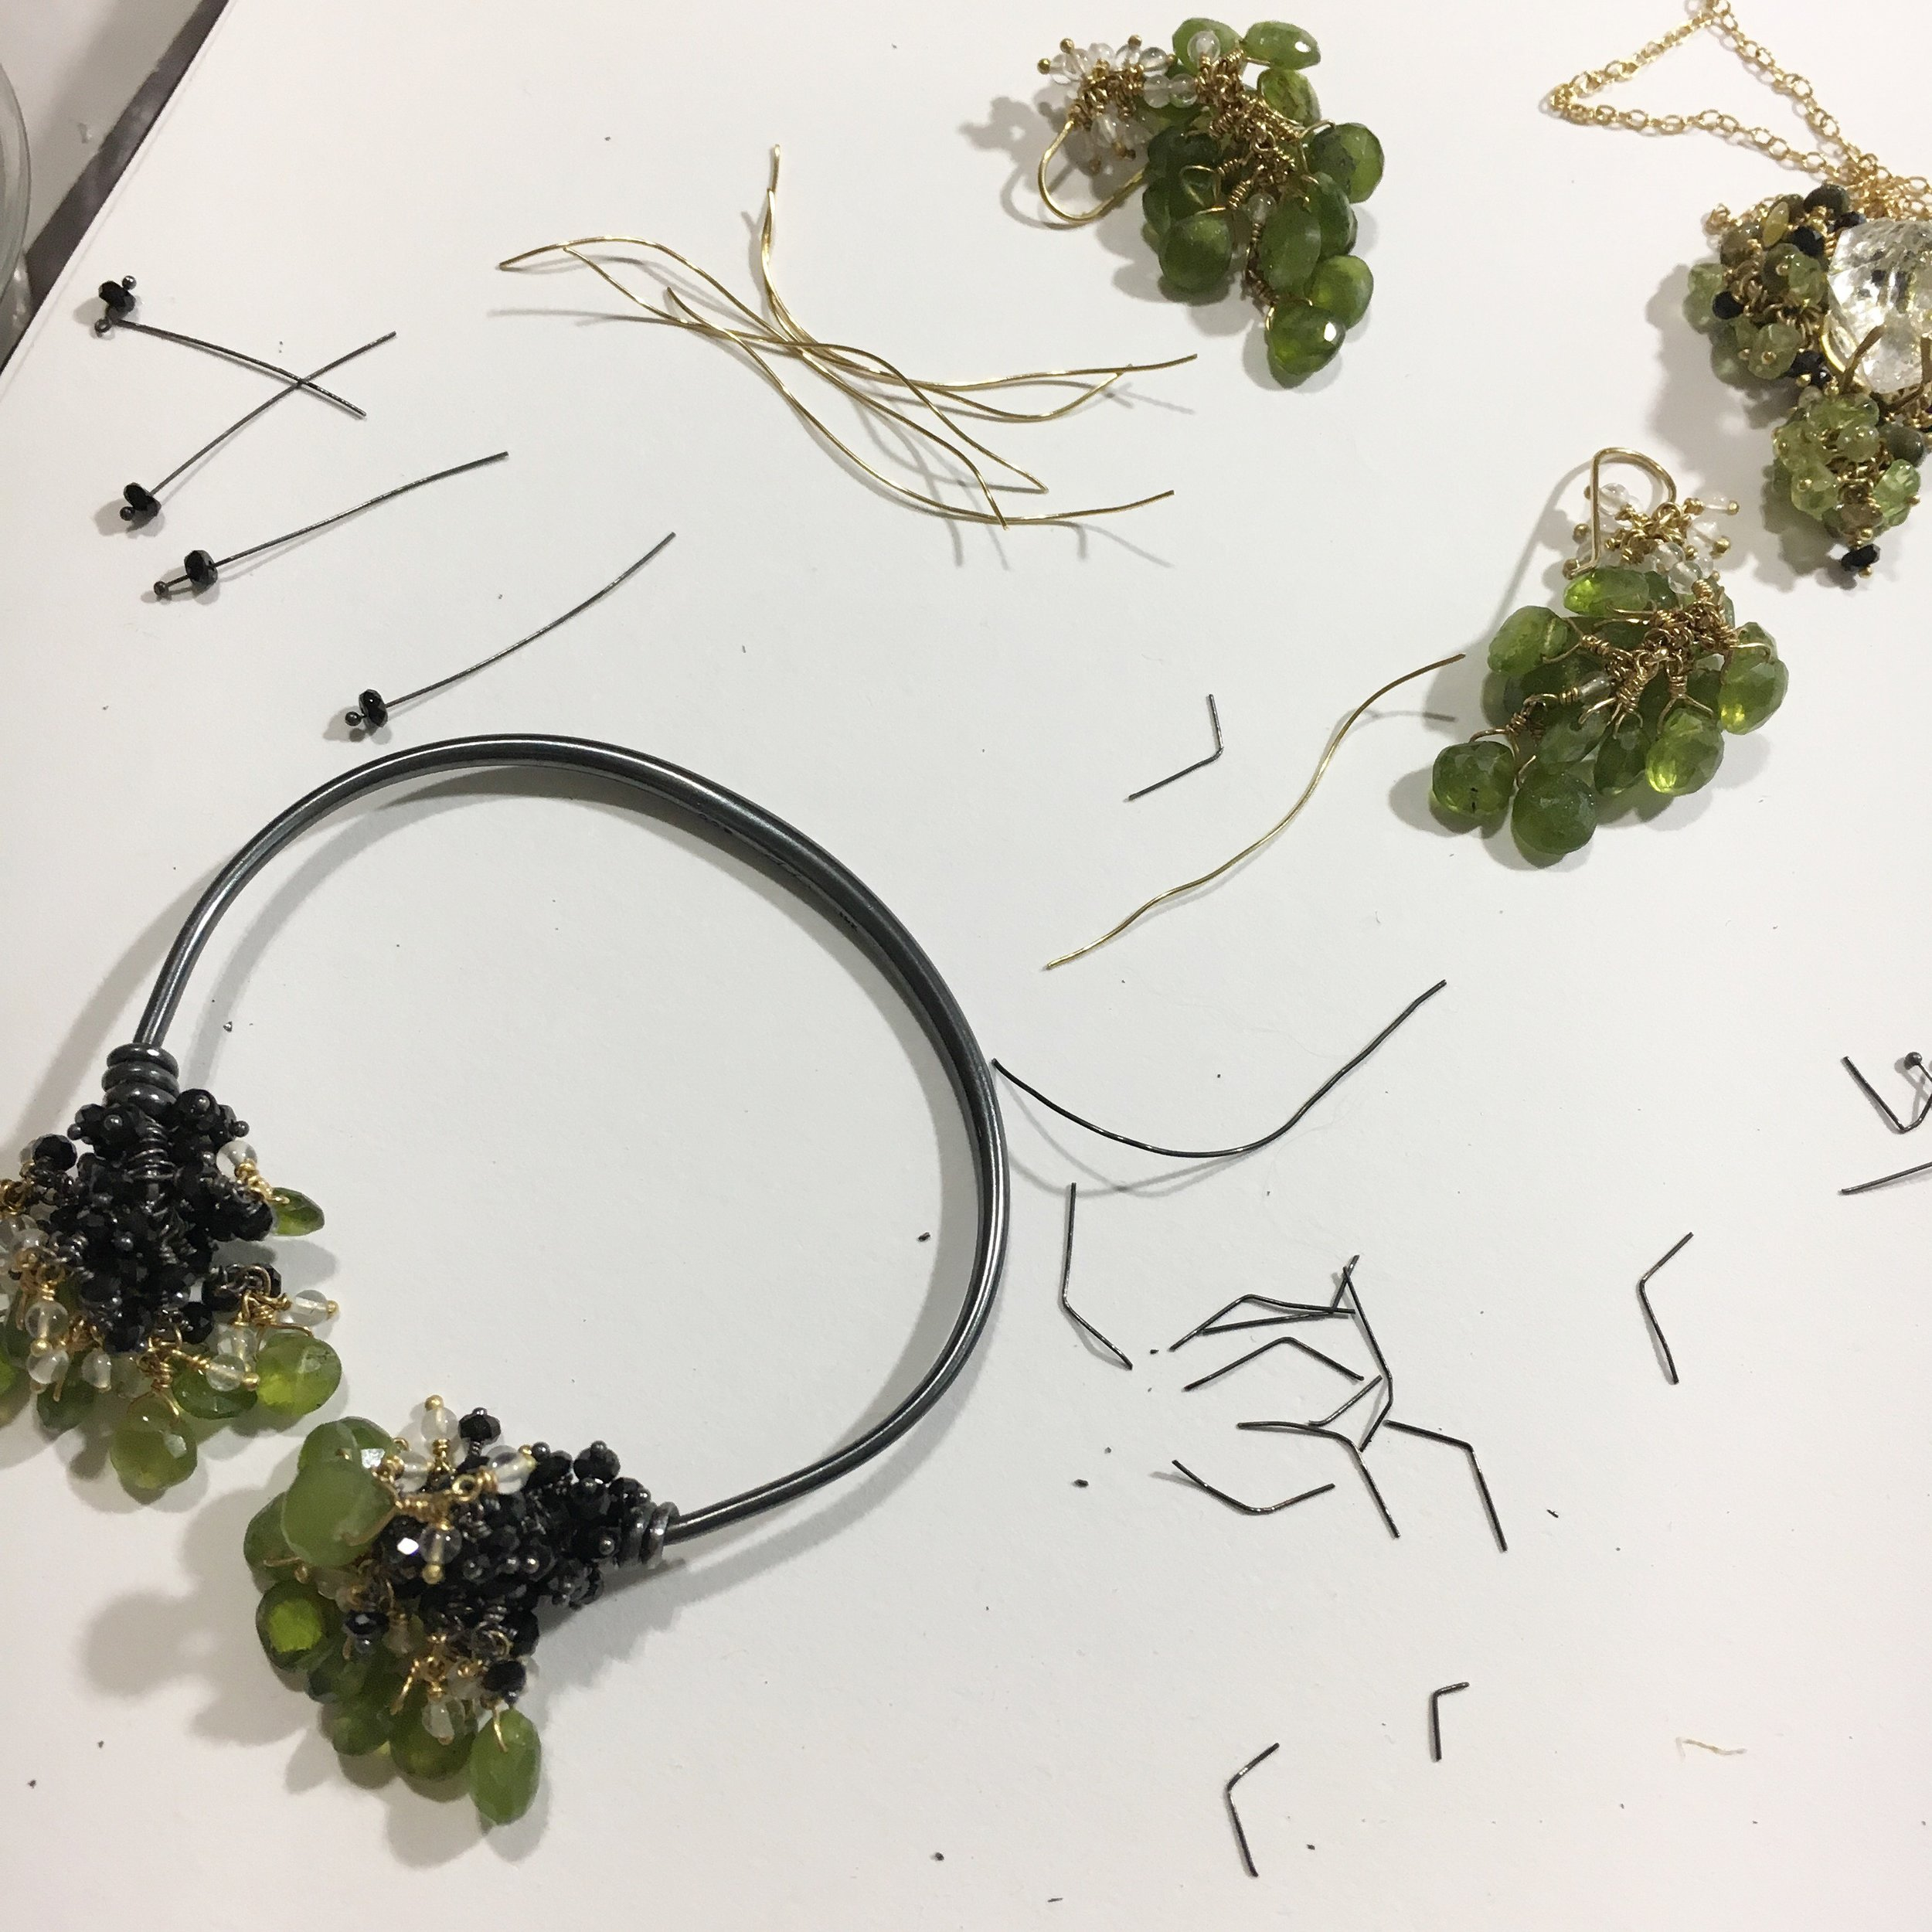 Voyageuse: Jewels Inspired by Moss